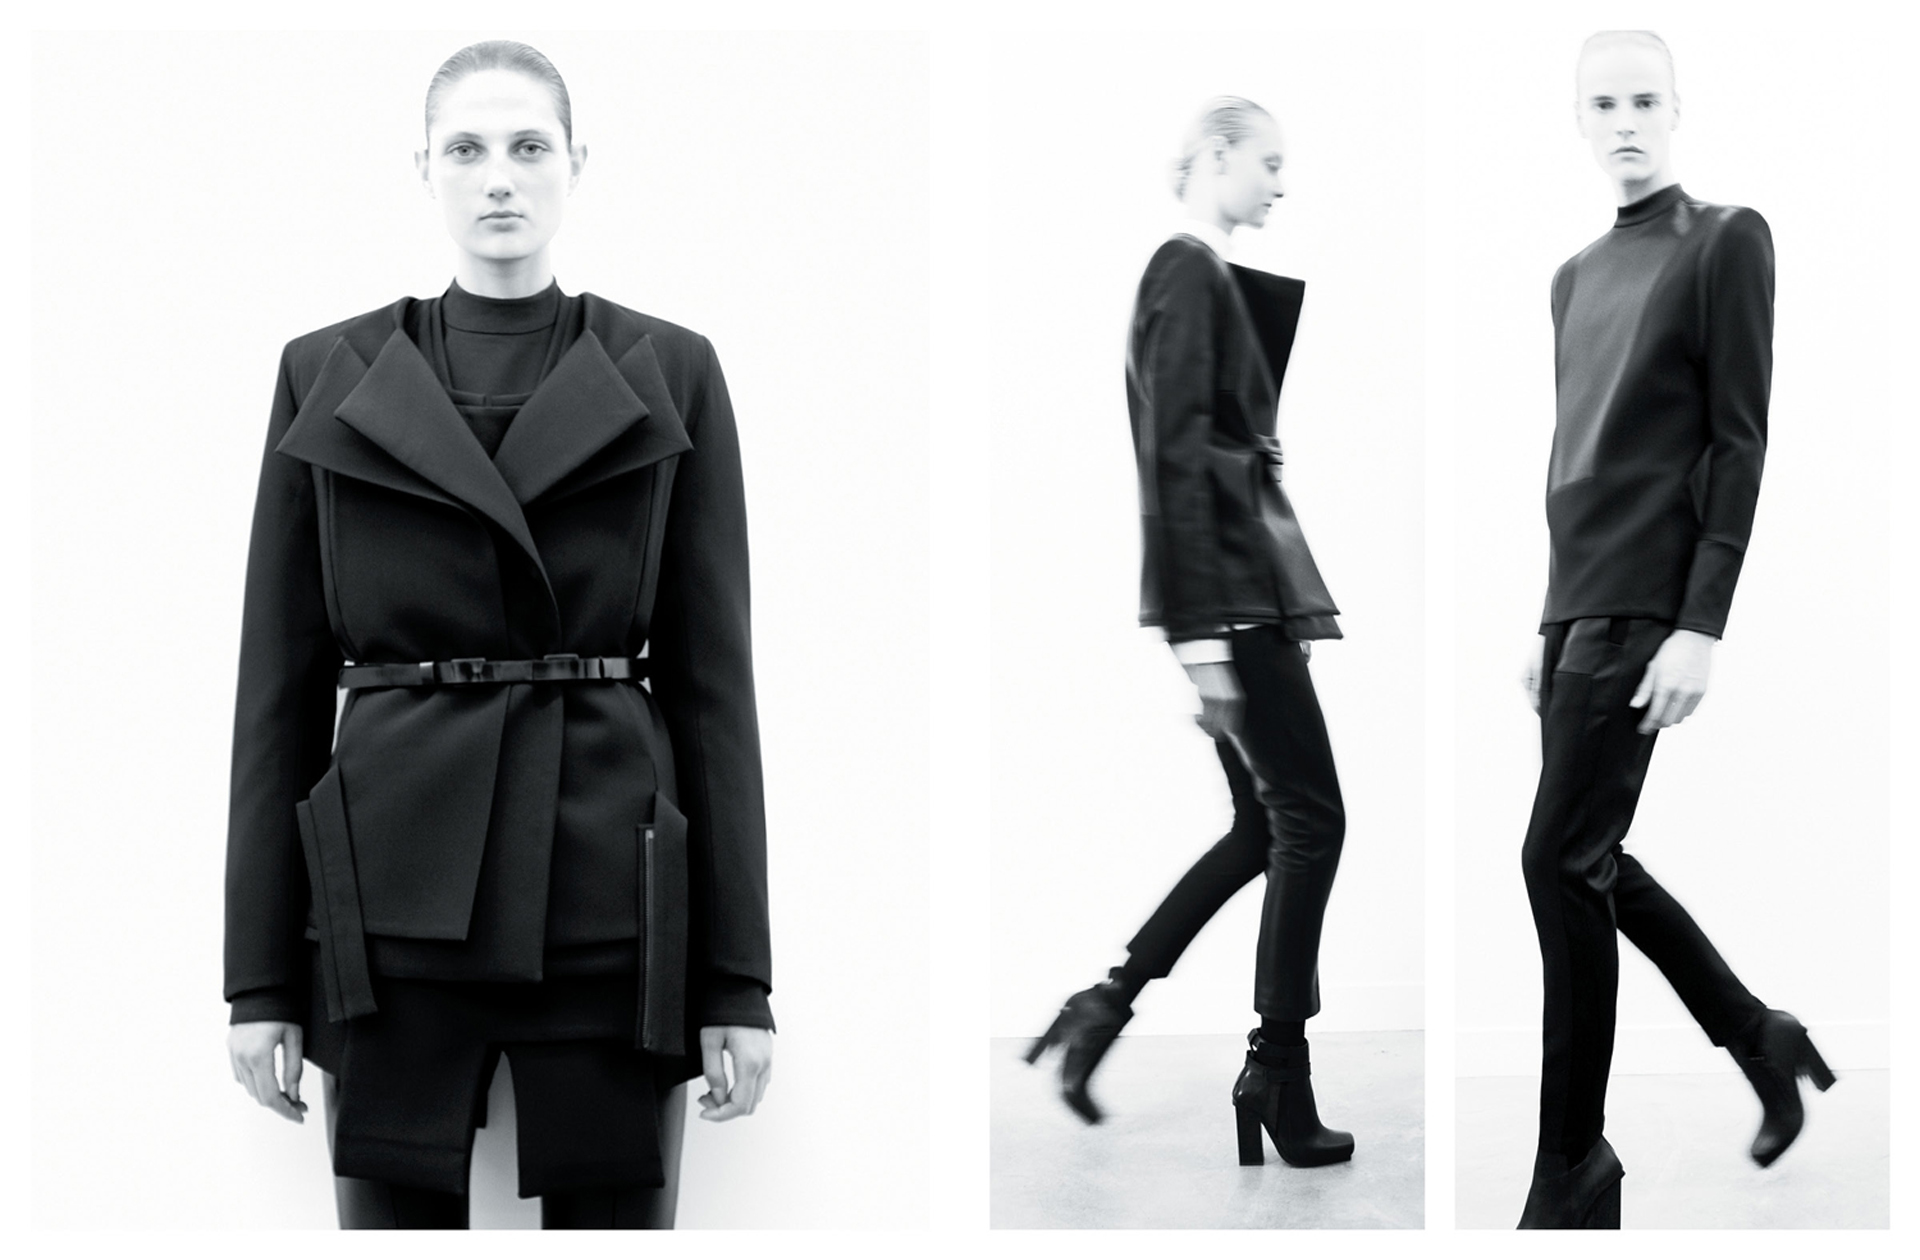 Rad by Rad Hourani Unisex Clothing Collection